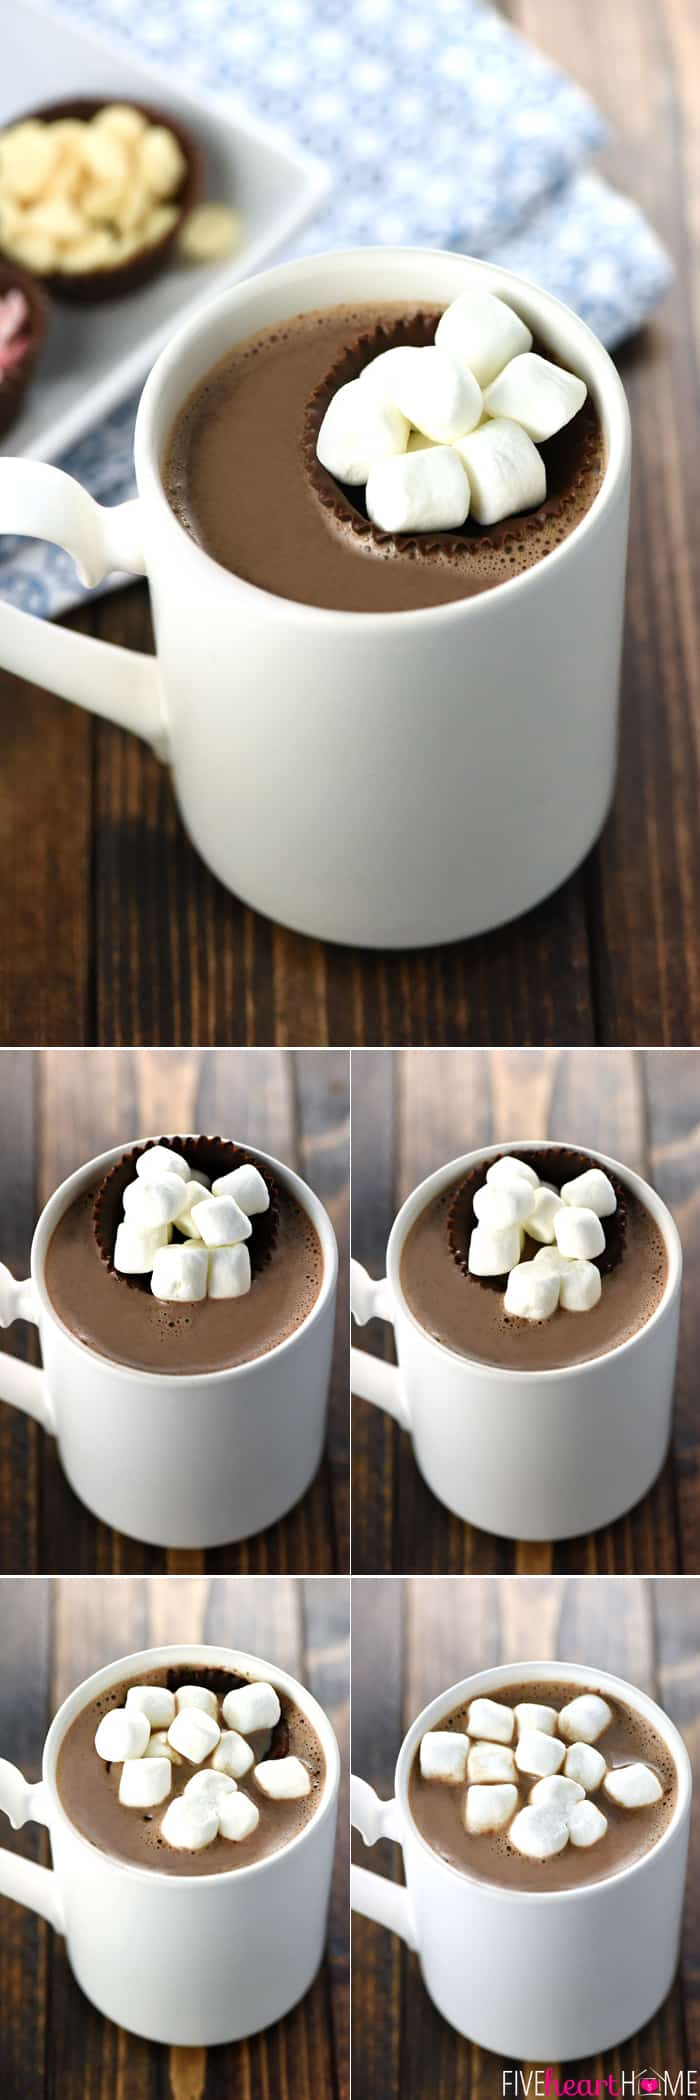 Steps Showing How Hot Chocolate Floaters Melt for the Perfect Cup of Hot Chocolate